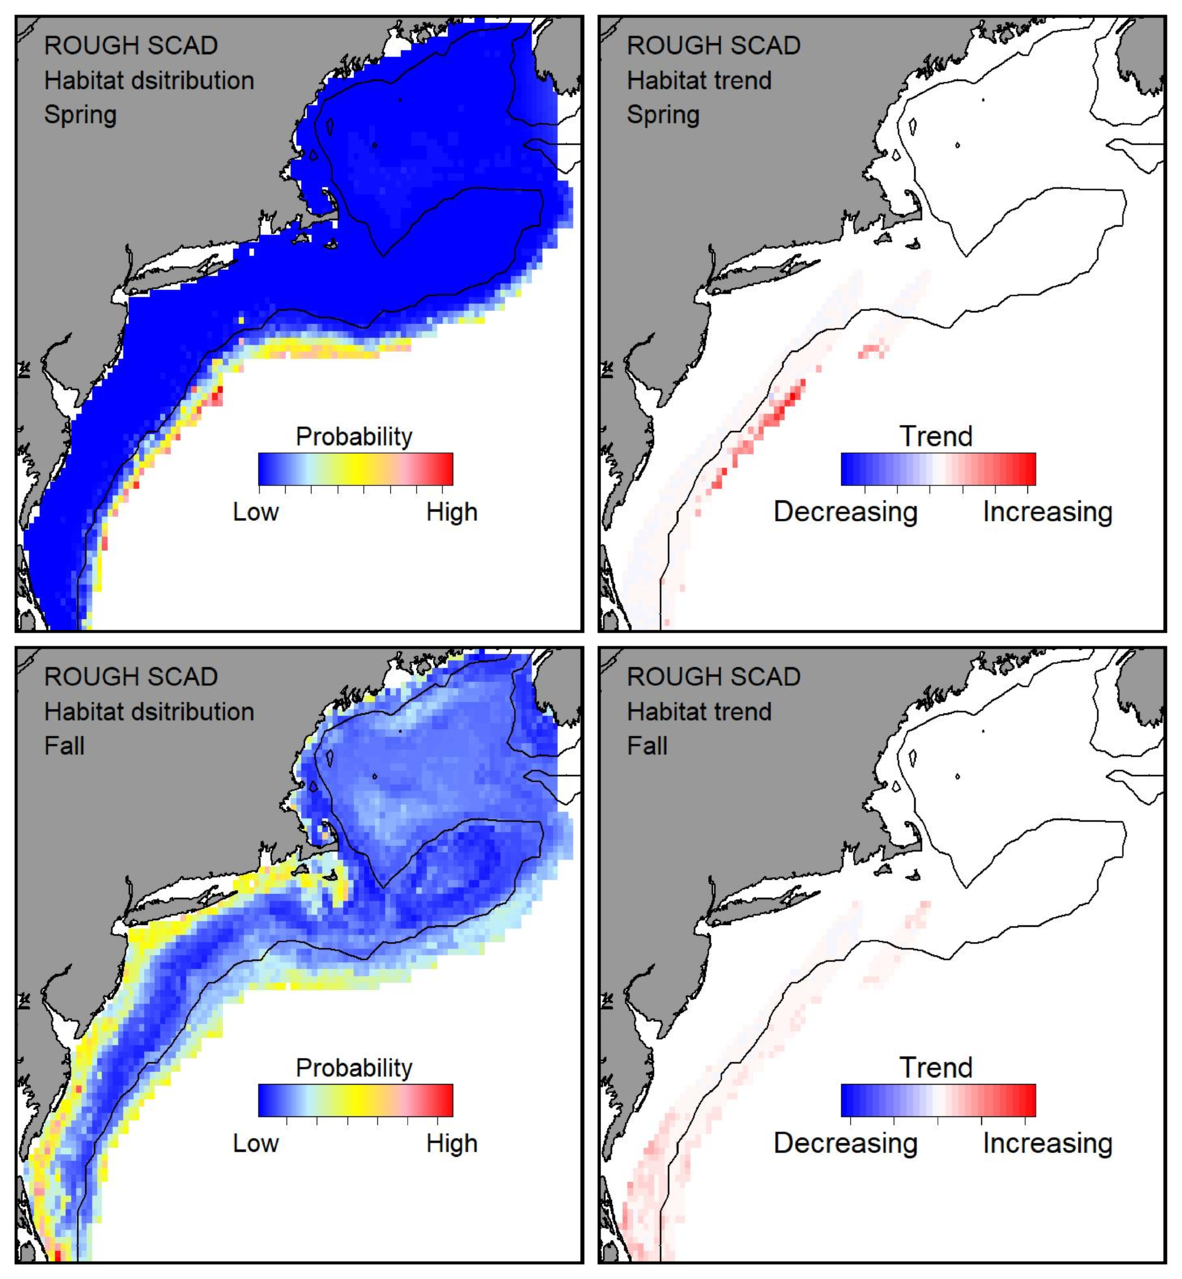 Probable habitat distribution for rough scad showing the highest concentration and increasing trend in the Gulf of Maine during the spring. Bottom row: Probable habitat distribution for rough scad showing the highest concentration and increasing trend in the Gulf of Maine during the fall.